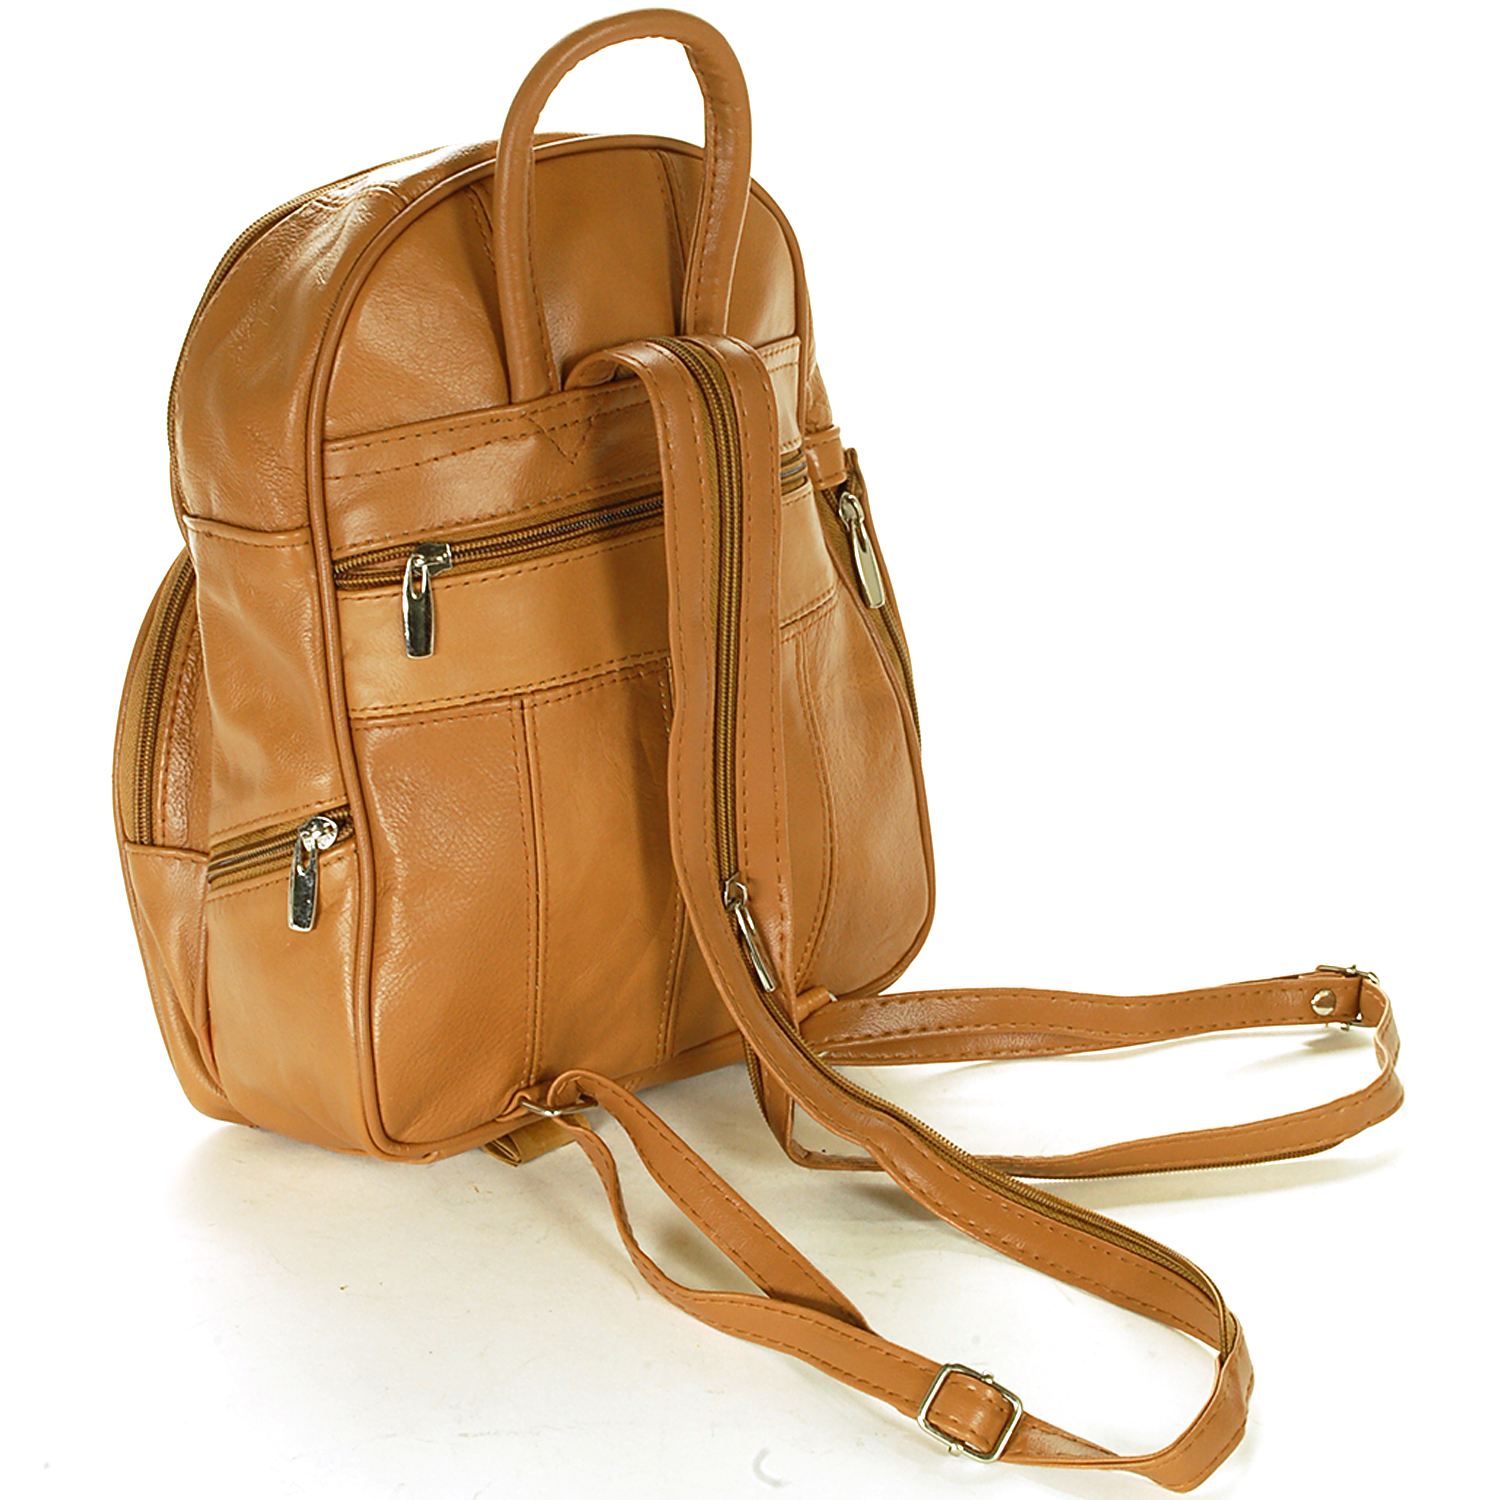 New Leather Backpack Purse Sling Bag Back Pack Shoulder Handbag ...